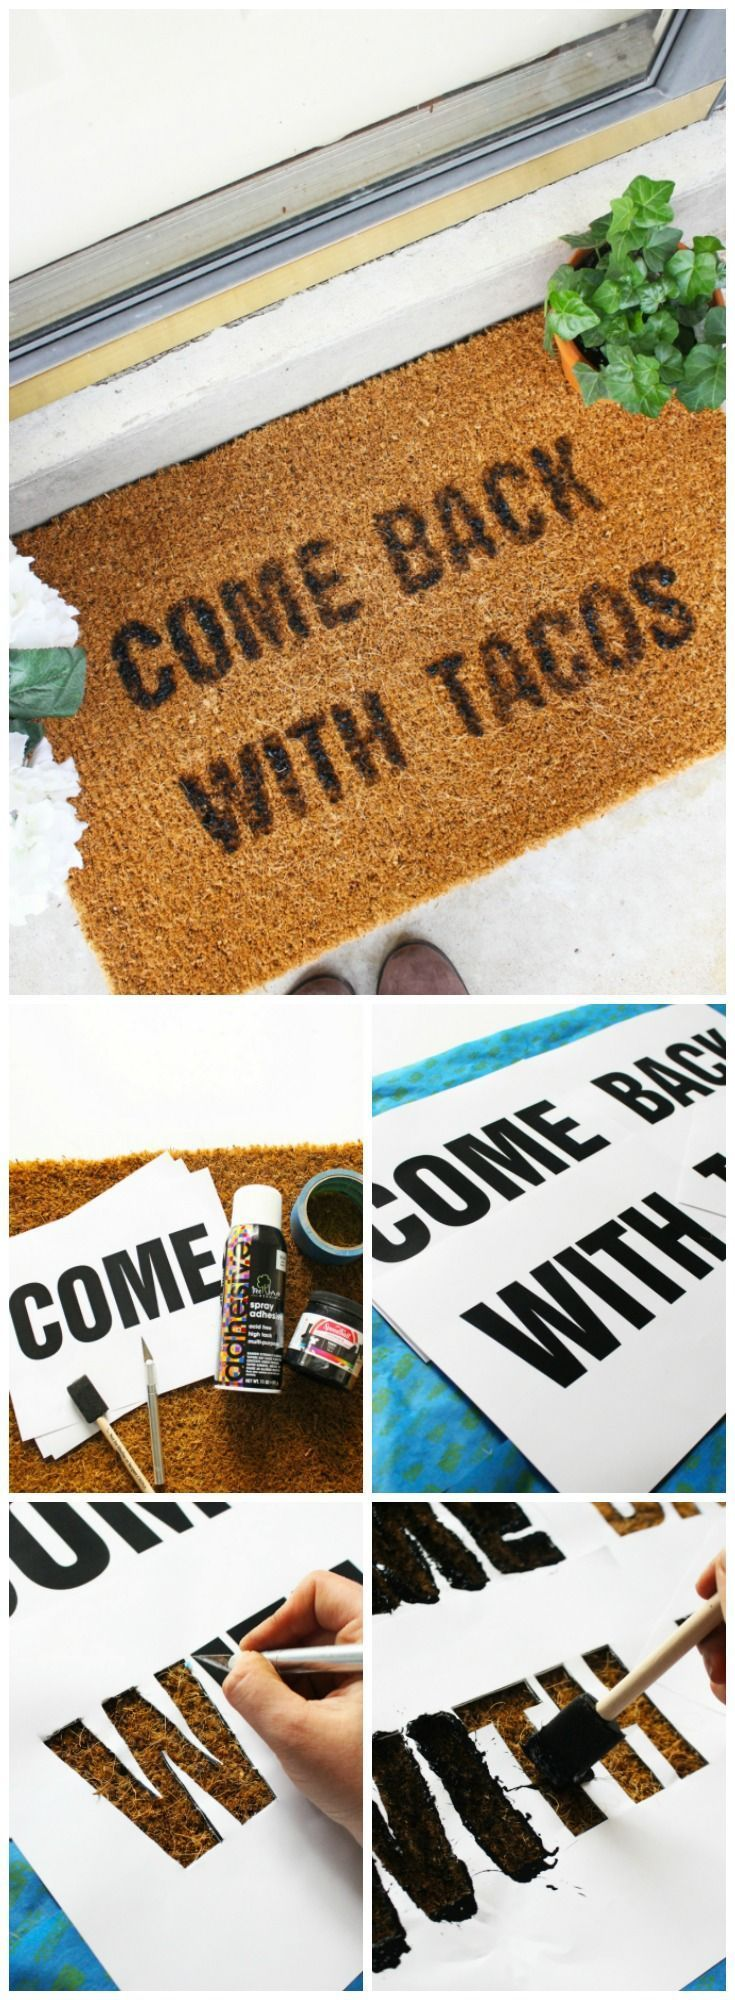 Funny doormat quote DIY tutorial. Easy welcome mat DIY ideas to decorate your front porch or patio.